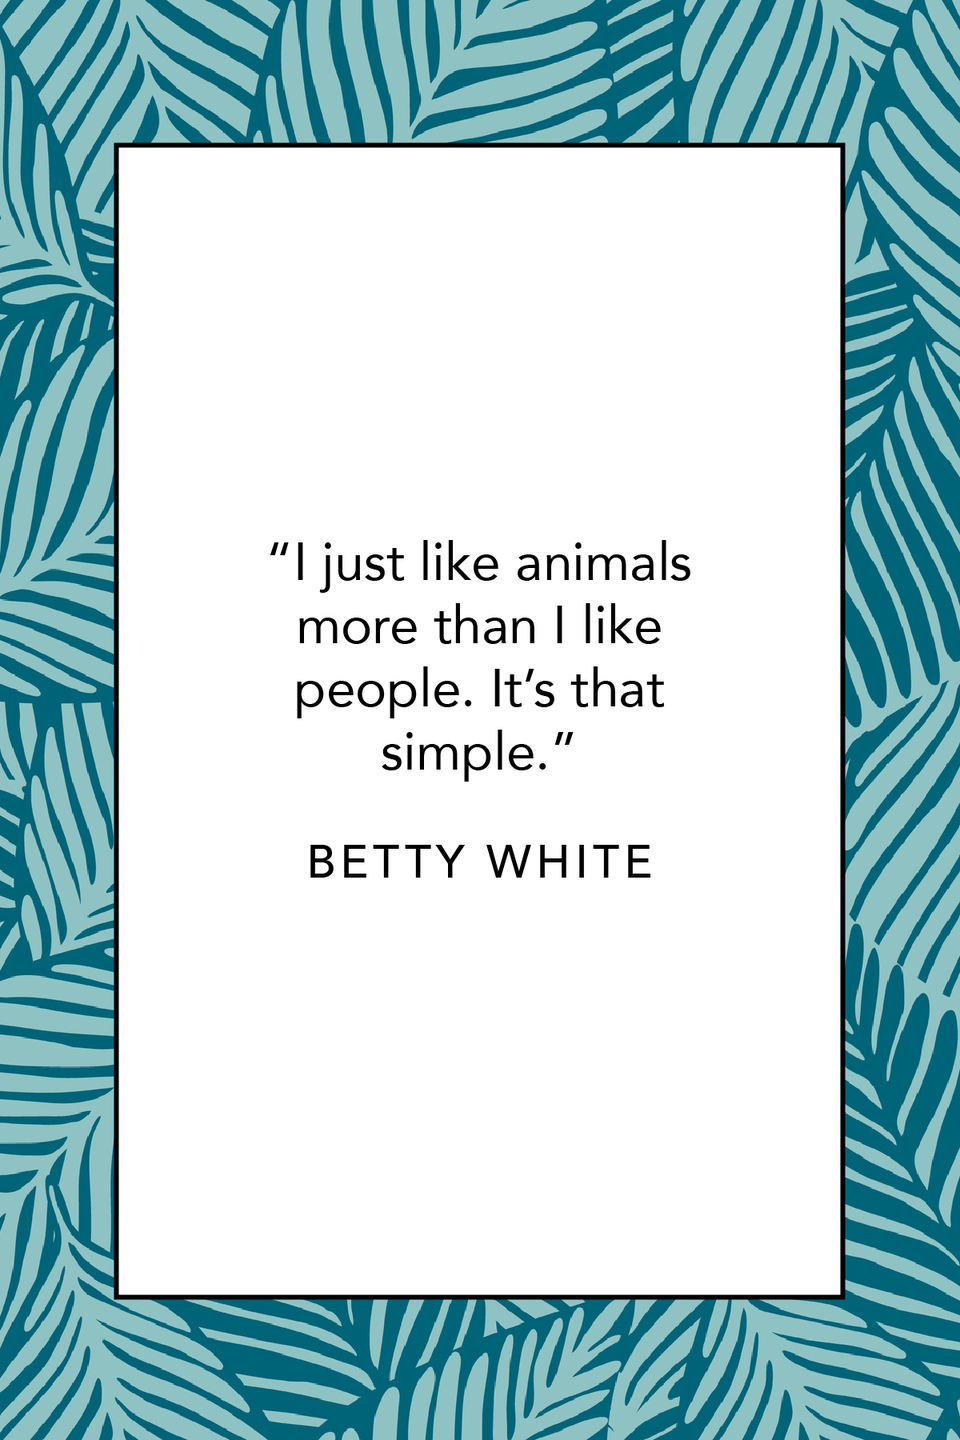 """<p>""""I just like animals more than I like people. It's that simple,"""" she said during an interview with <em><a href=""""https://www.youtube.com/watch?v=WJzQhHV2irw"""" rel=""""nofollow noopener"""" target=""""_blank"""" data-ylk=""""slk:Entertainment Online"""" class=""""link rapid-noclick-resp"""">Entertainment Online</a>.</em></p>"""